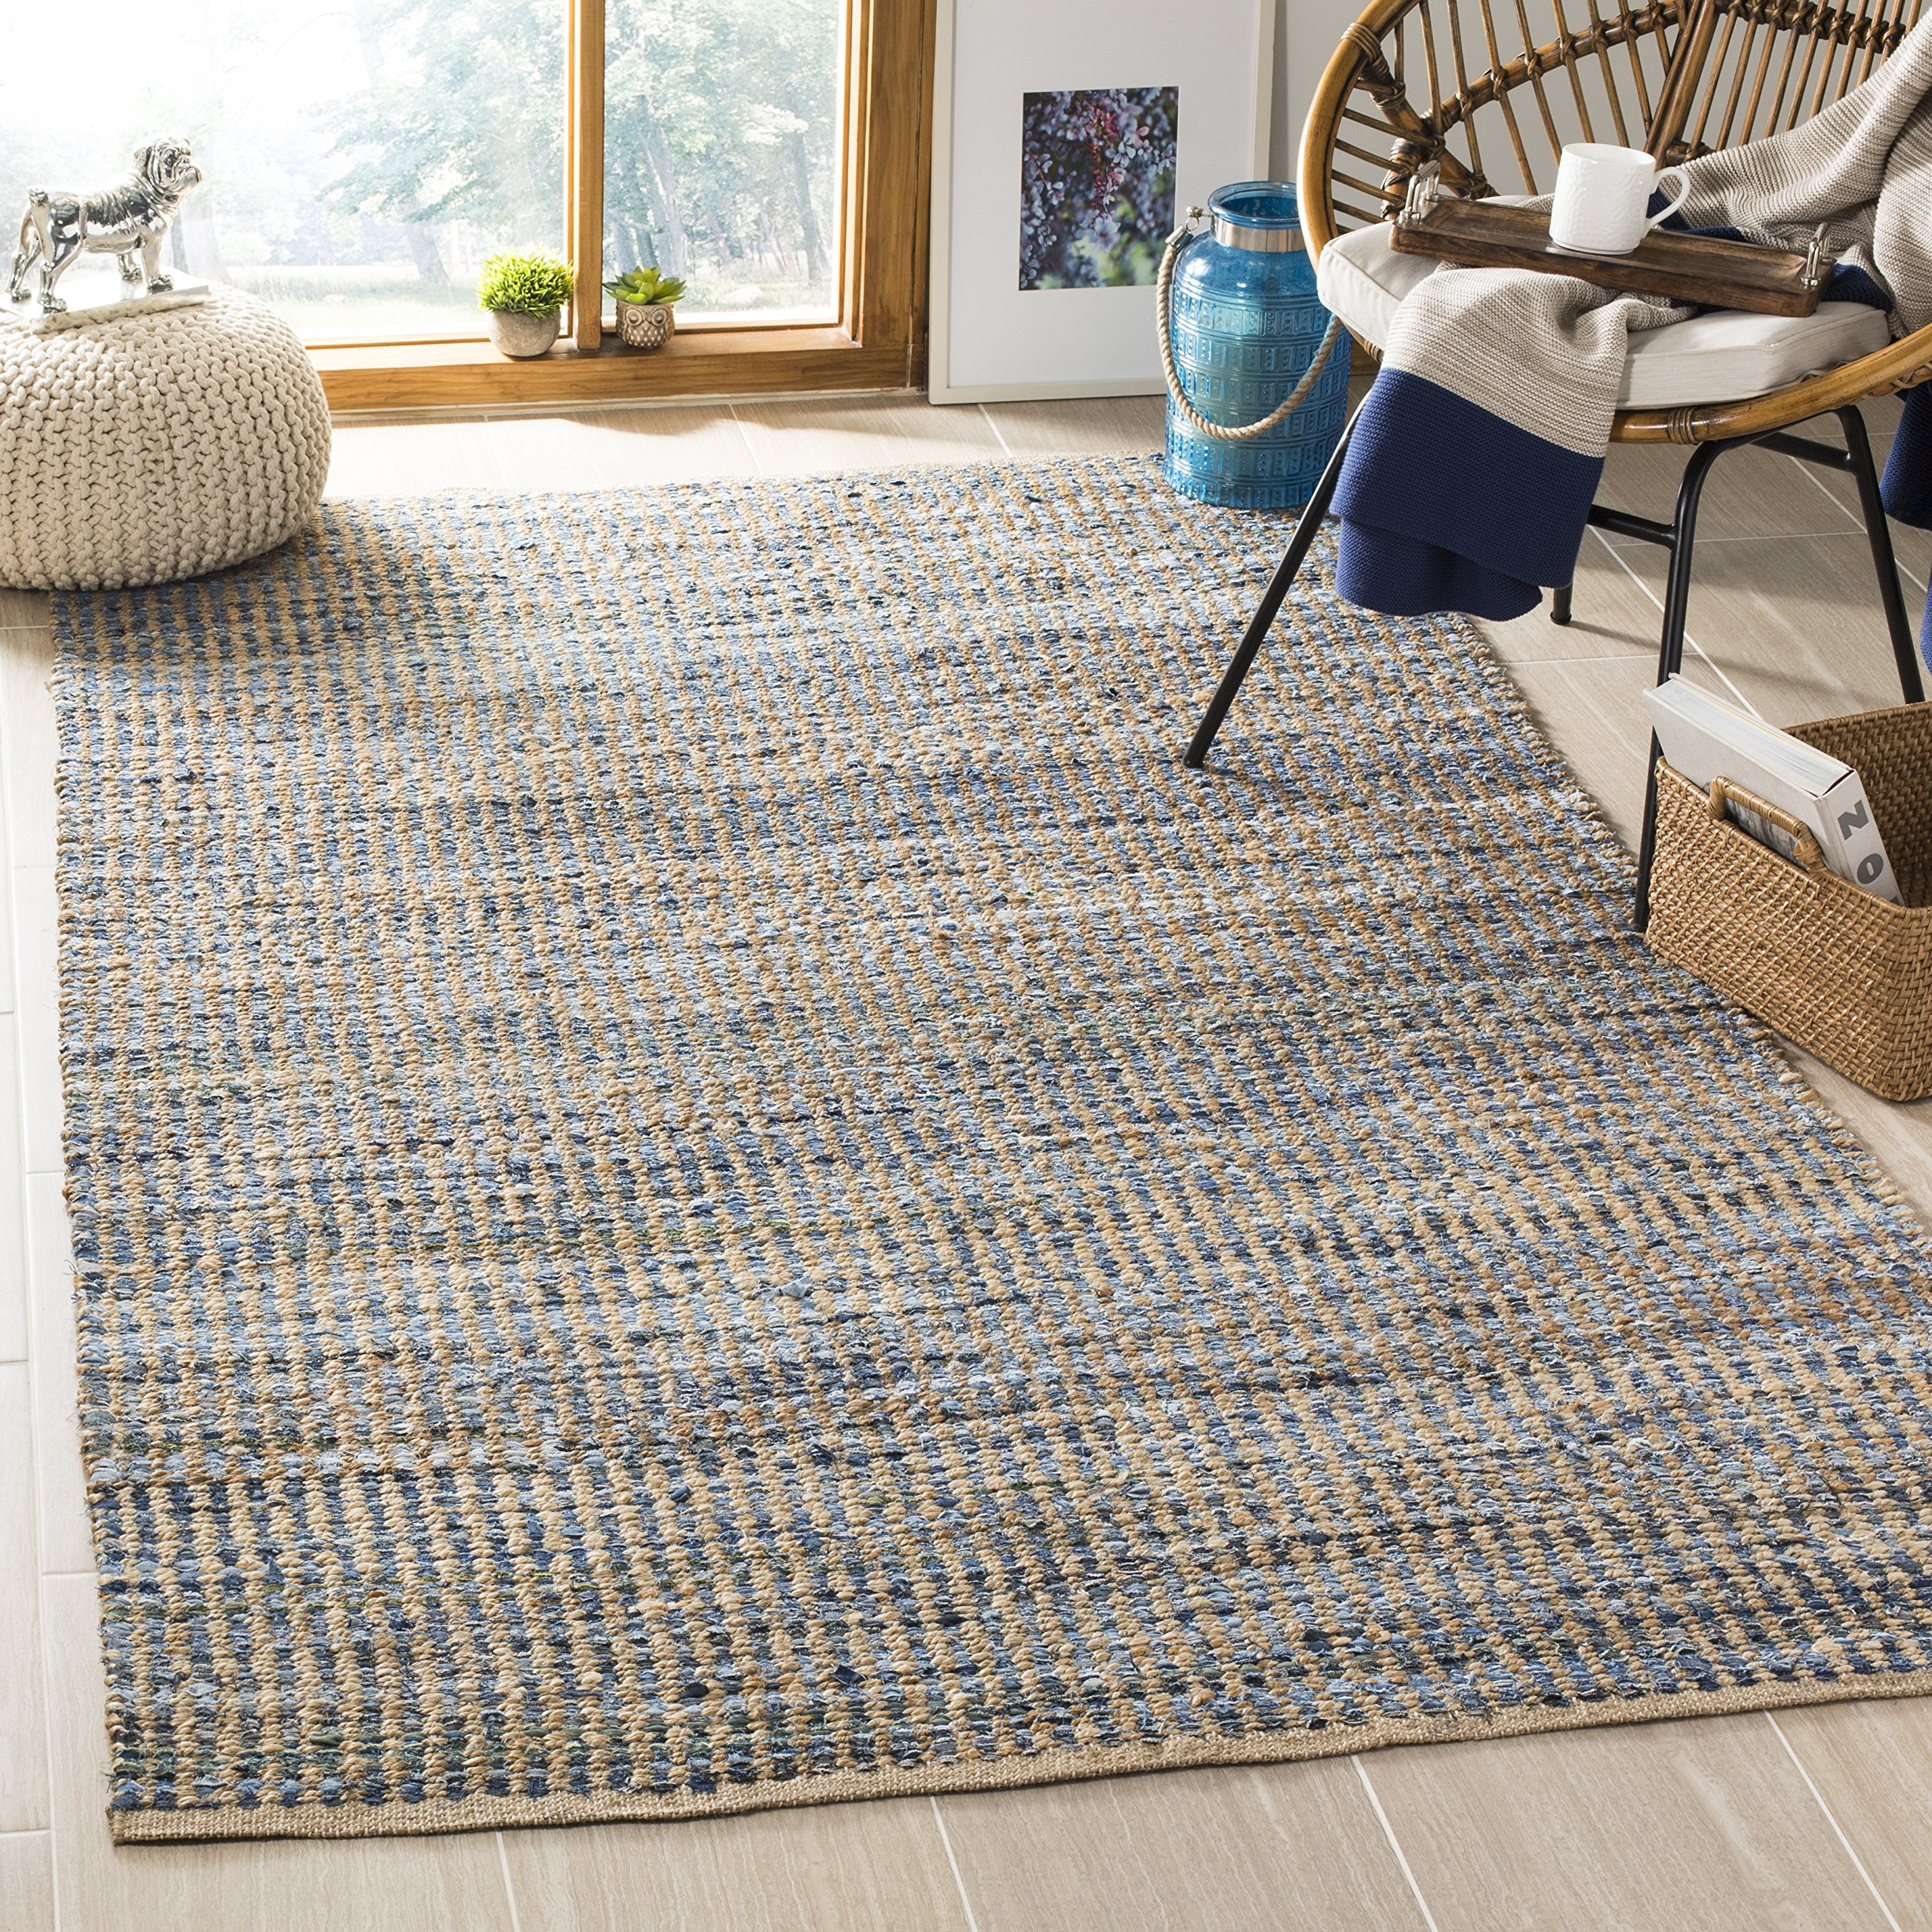 Safavieh Cape Cod Collection CAP352A Hand Woven Flatweave Natural and Blue Striped Jute Area Rug (4' x 6')